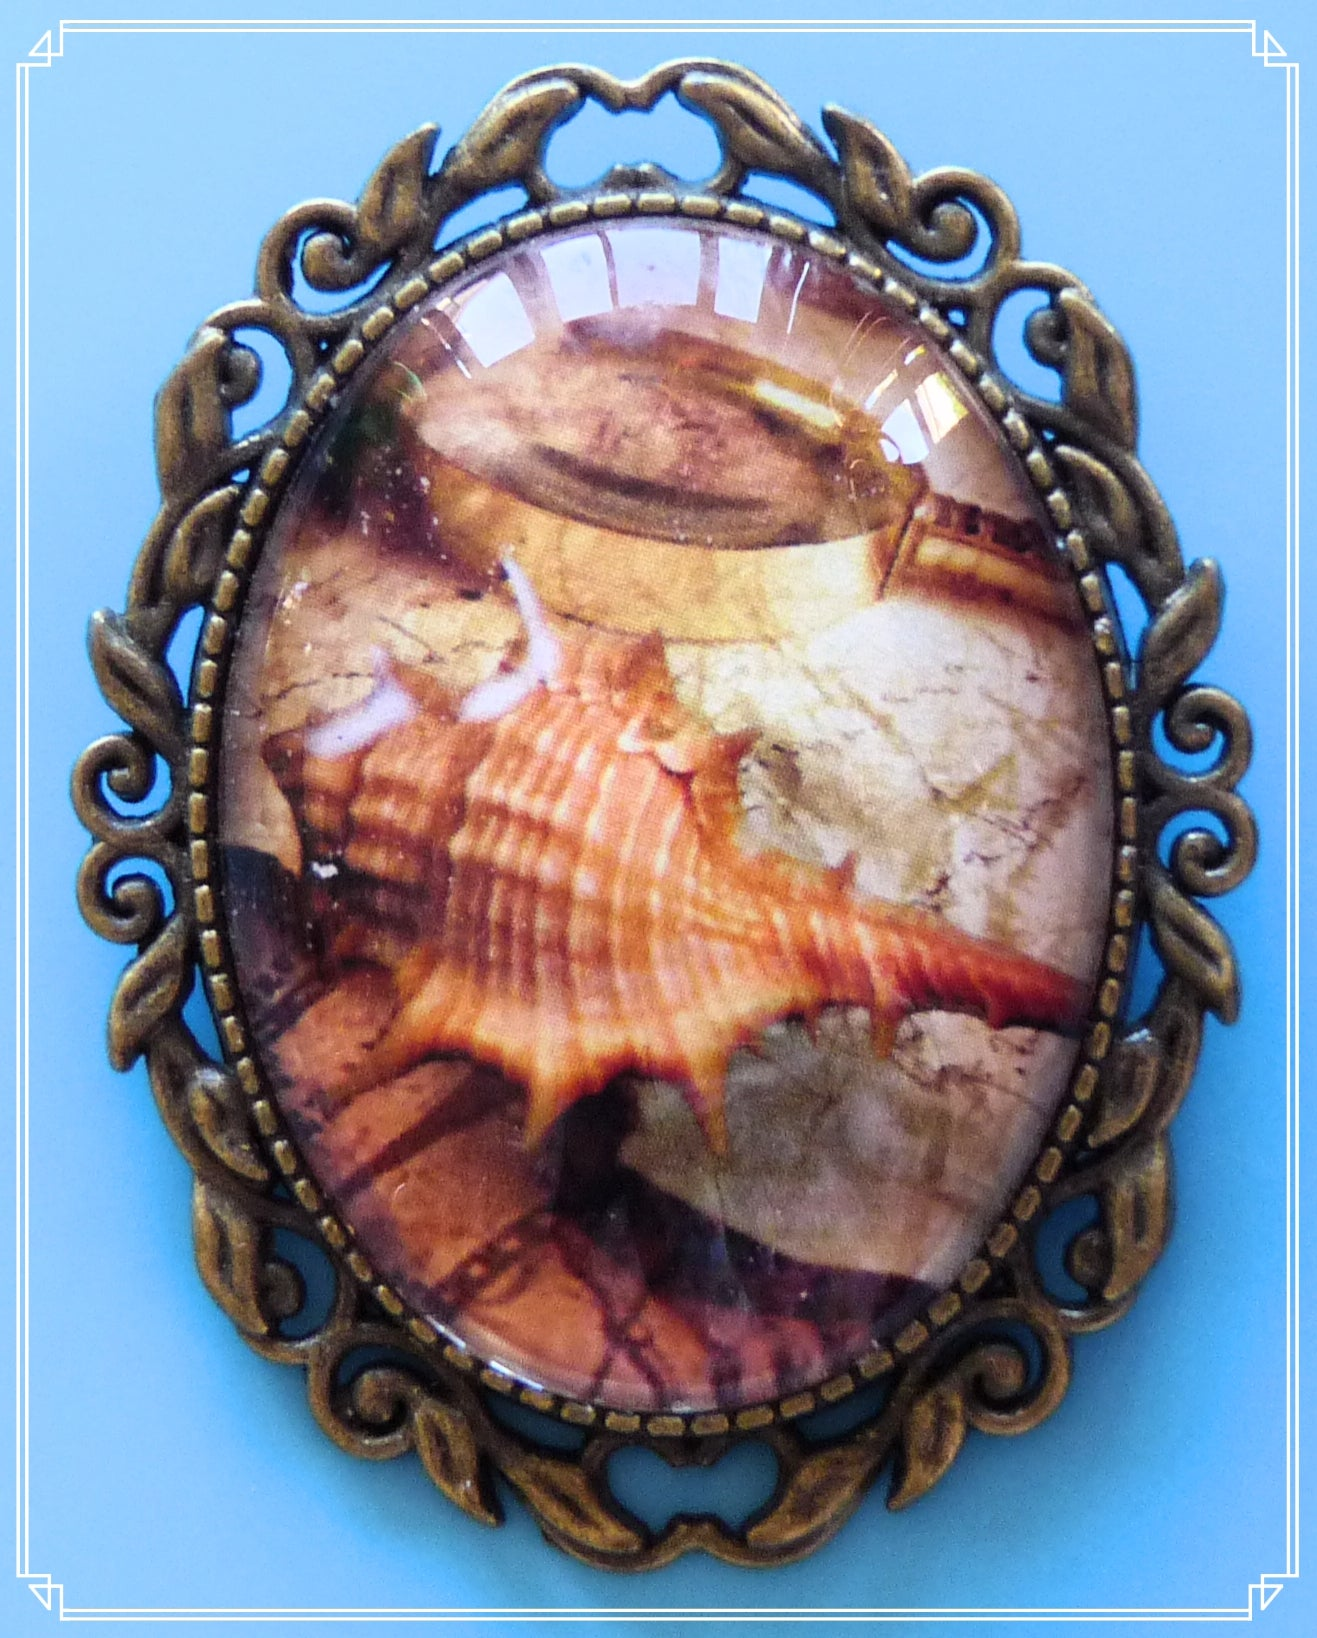 Enchanted Oceans - Mermaid Peak Pirate Map brooch